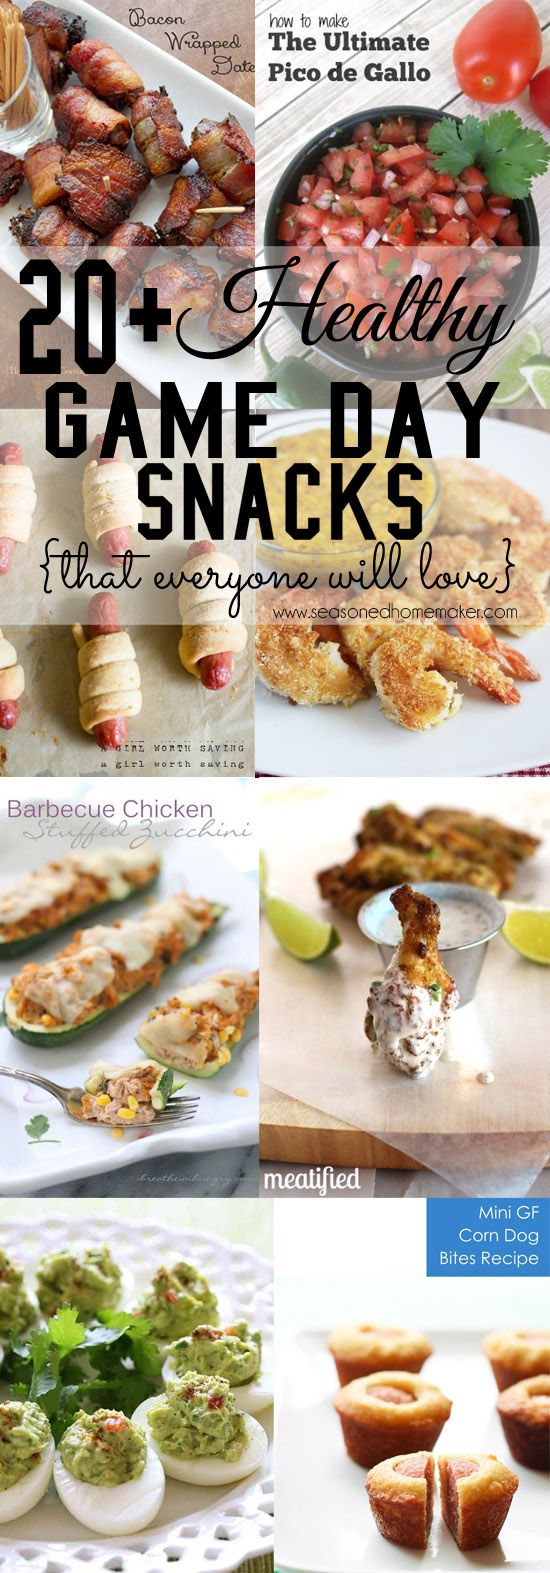 Healthy Game Day Snacks Healthy superbowl snacks, Game